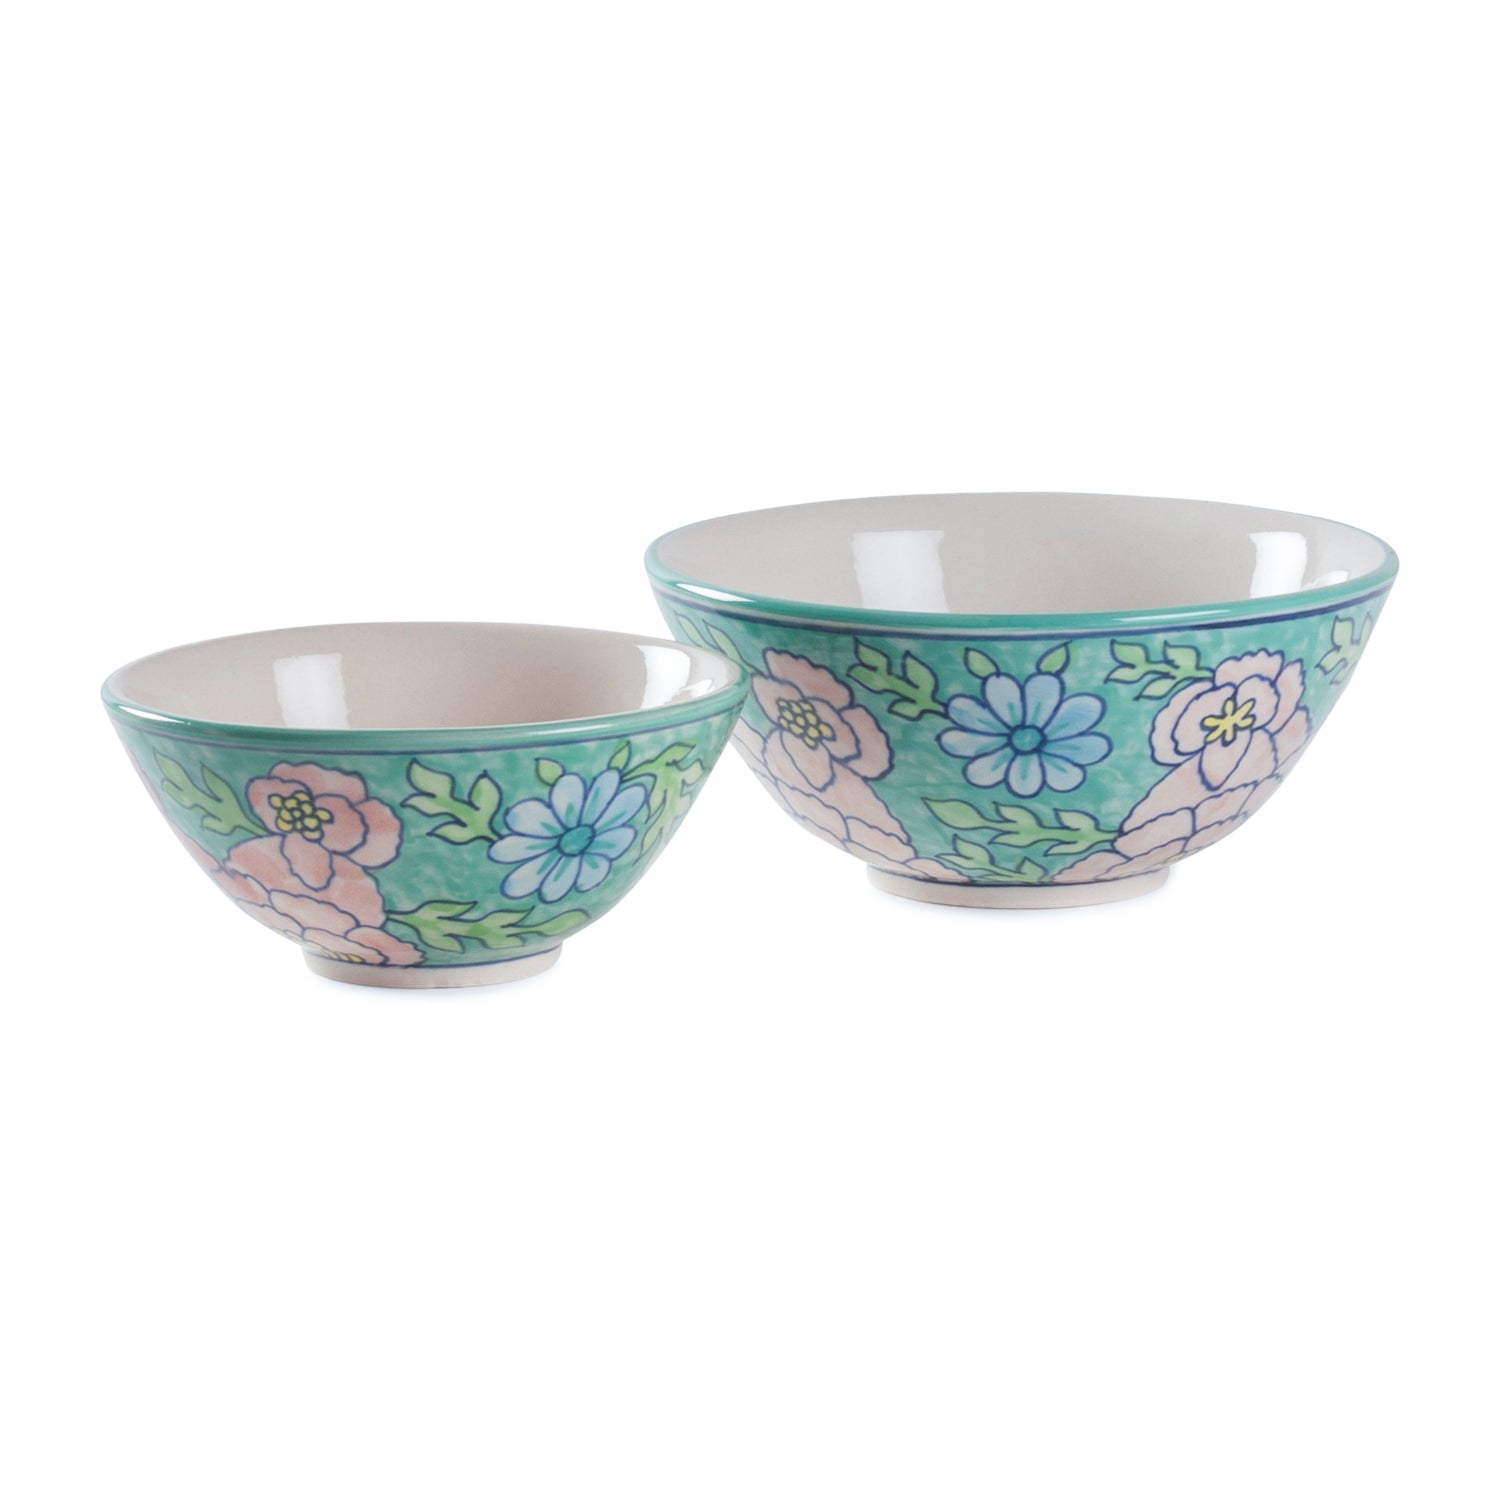 Handpainted Serving Bowl Set of 2